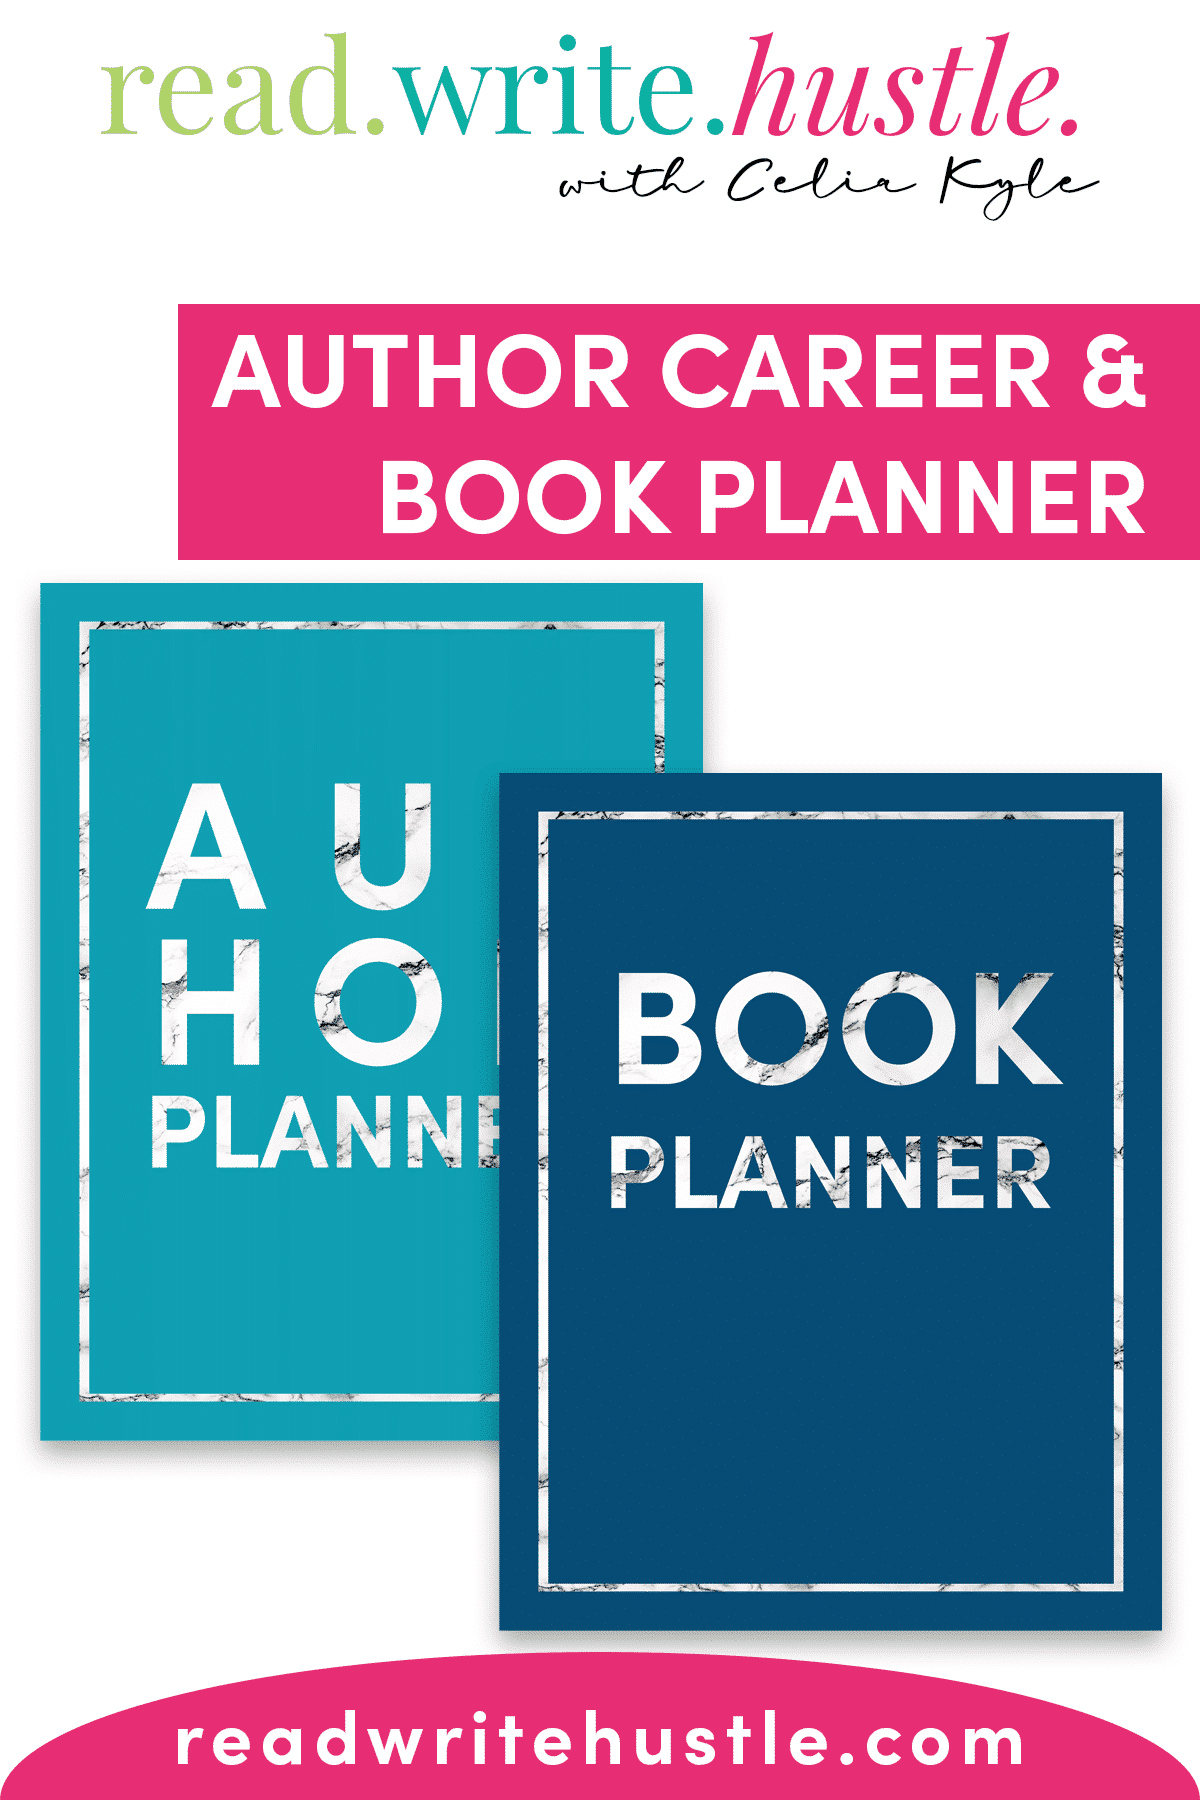 author career book planner featured image